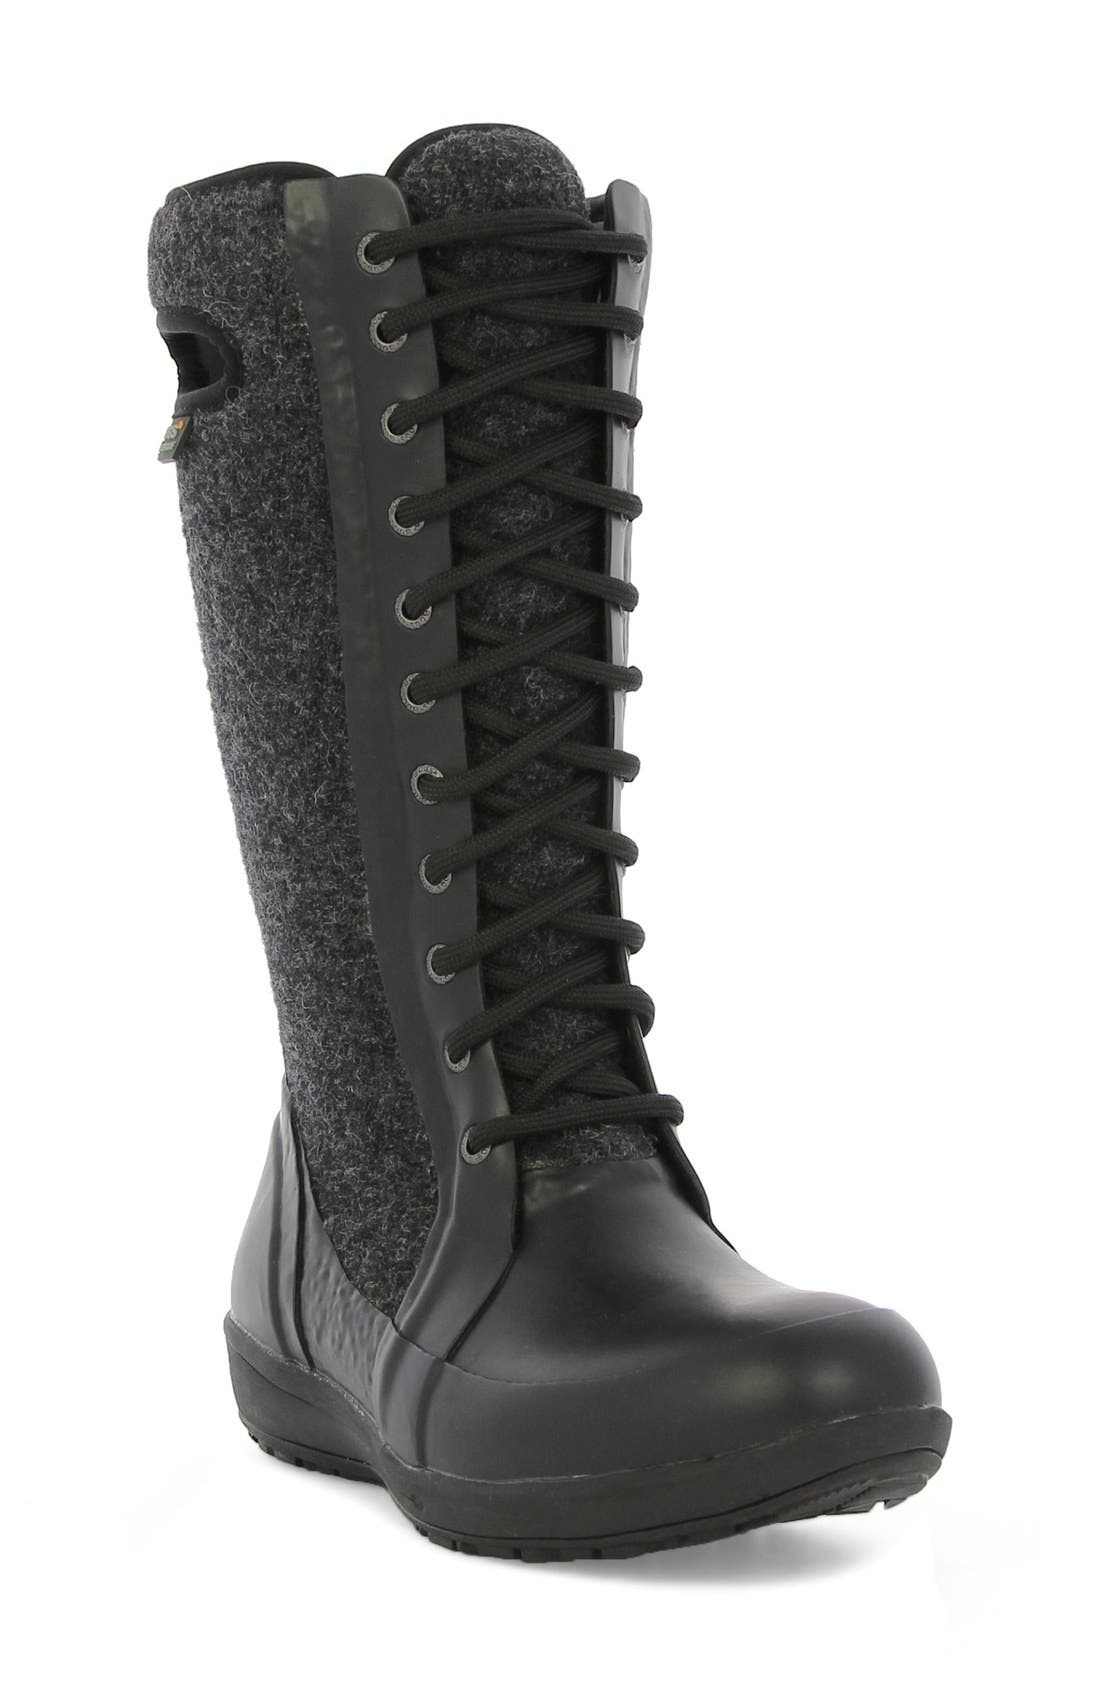 'Cami' Knee High Waterproof Boot,                         Main,                         color, Black Multi Wool